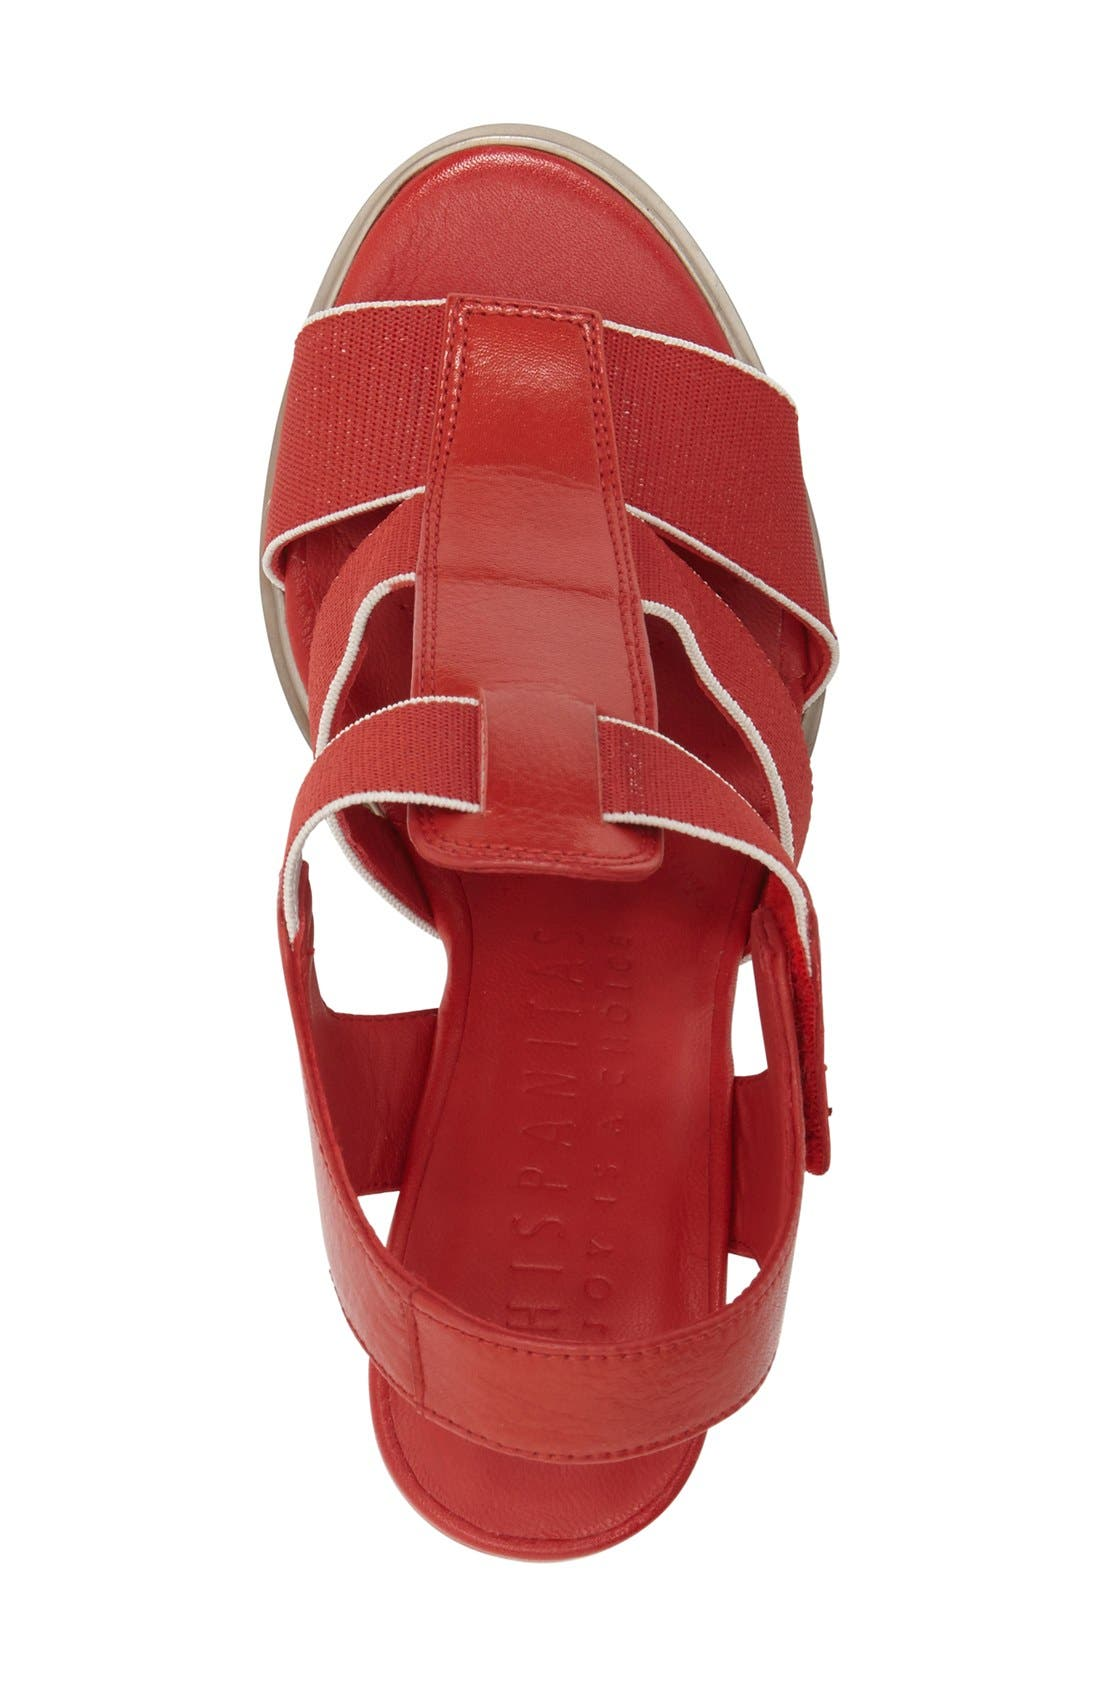 Alternate Image 3  - Hispanitas 'Matchless' Sandal (Women)